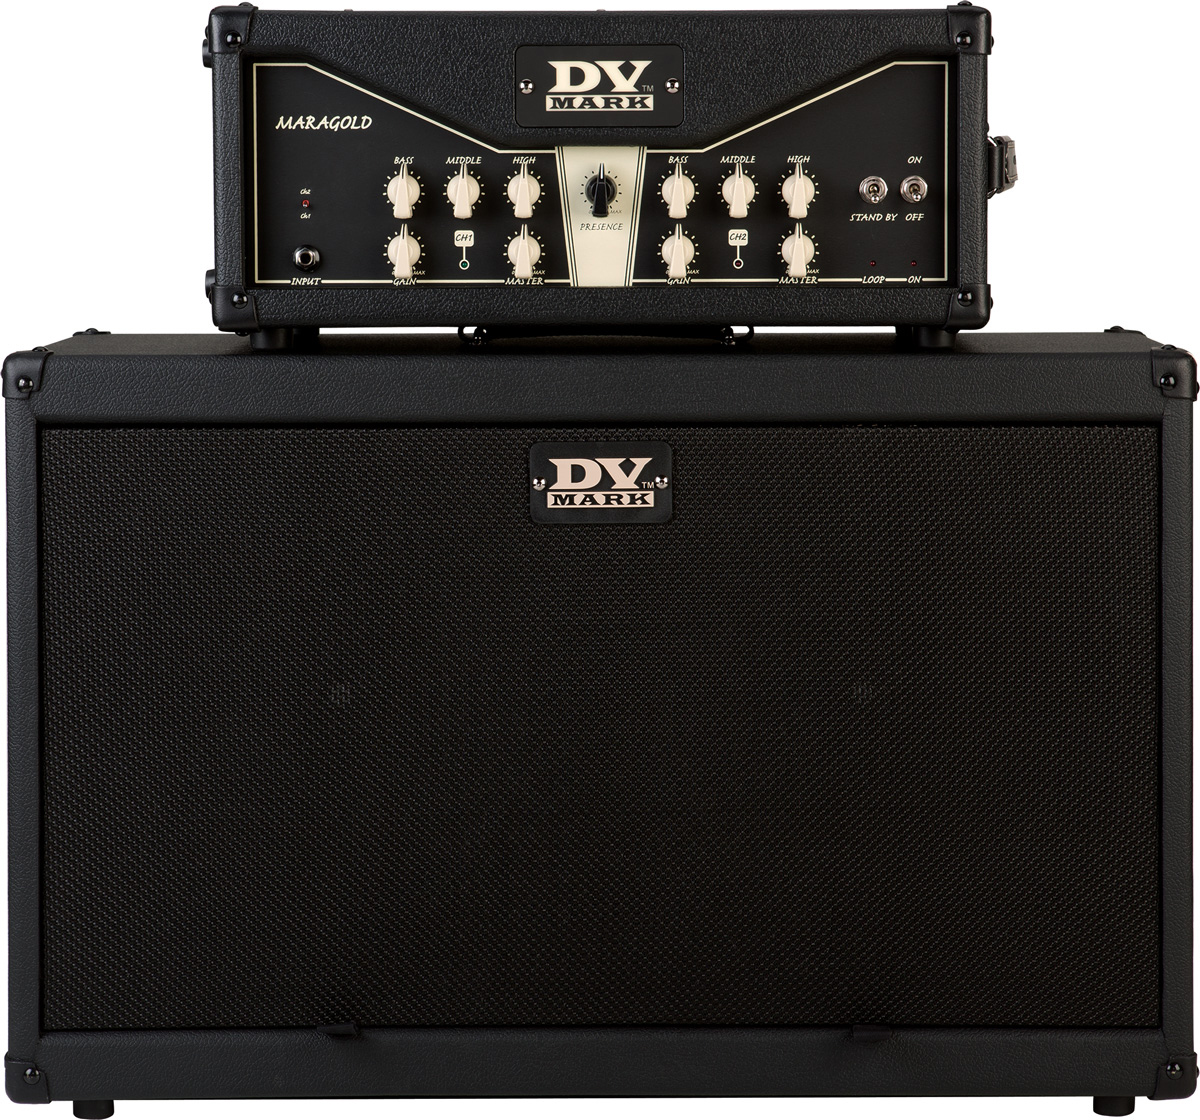 dv mark guitar amplifiers now available exclusively through guitar center and musician s friend. Black Bedroom Furniture Sets. Home Design Ideas